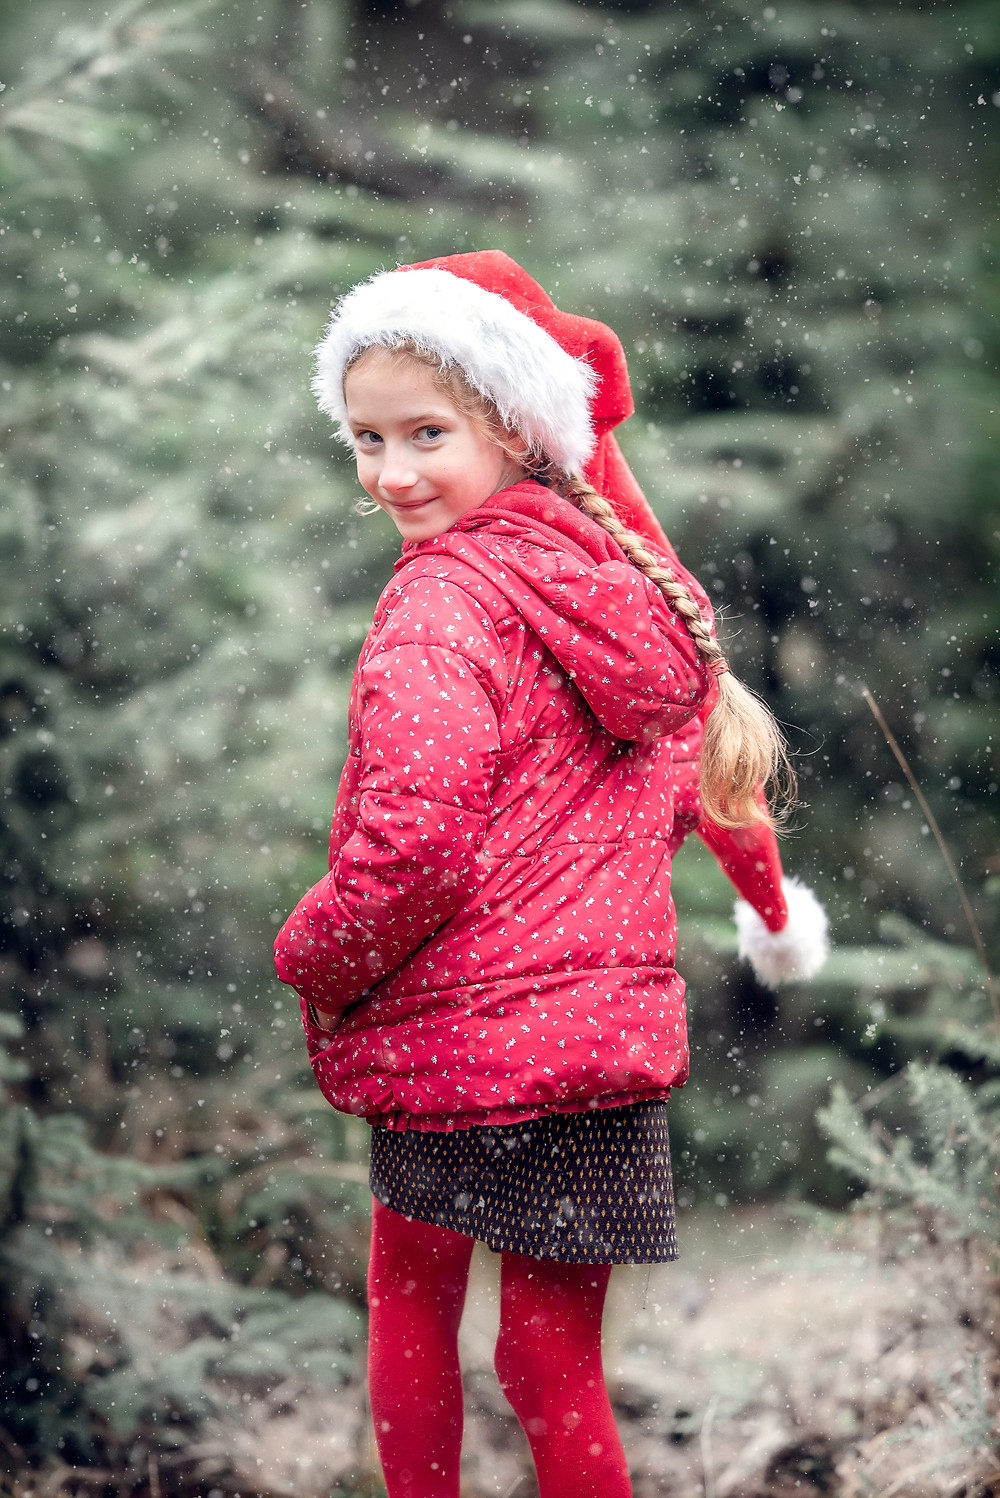 Girl in snow. Outdoor Christmas photography by Somerset photographer Sarah Gibson